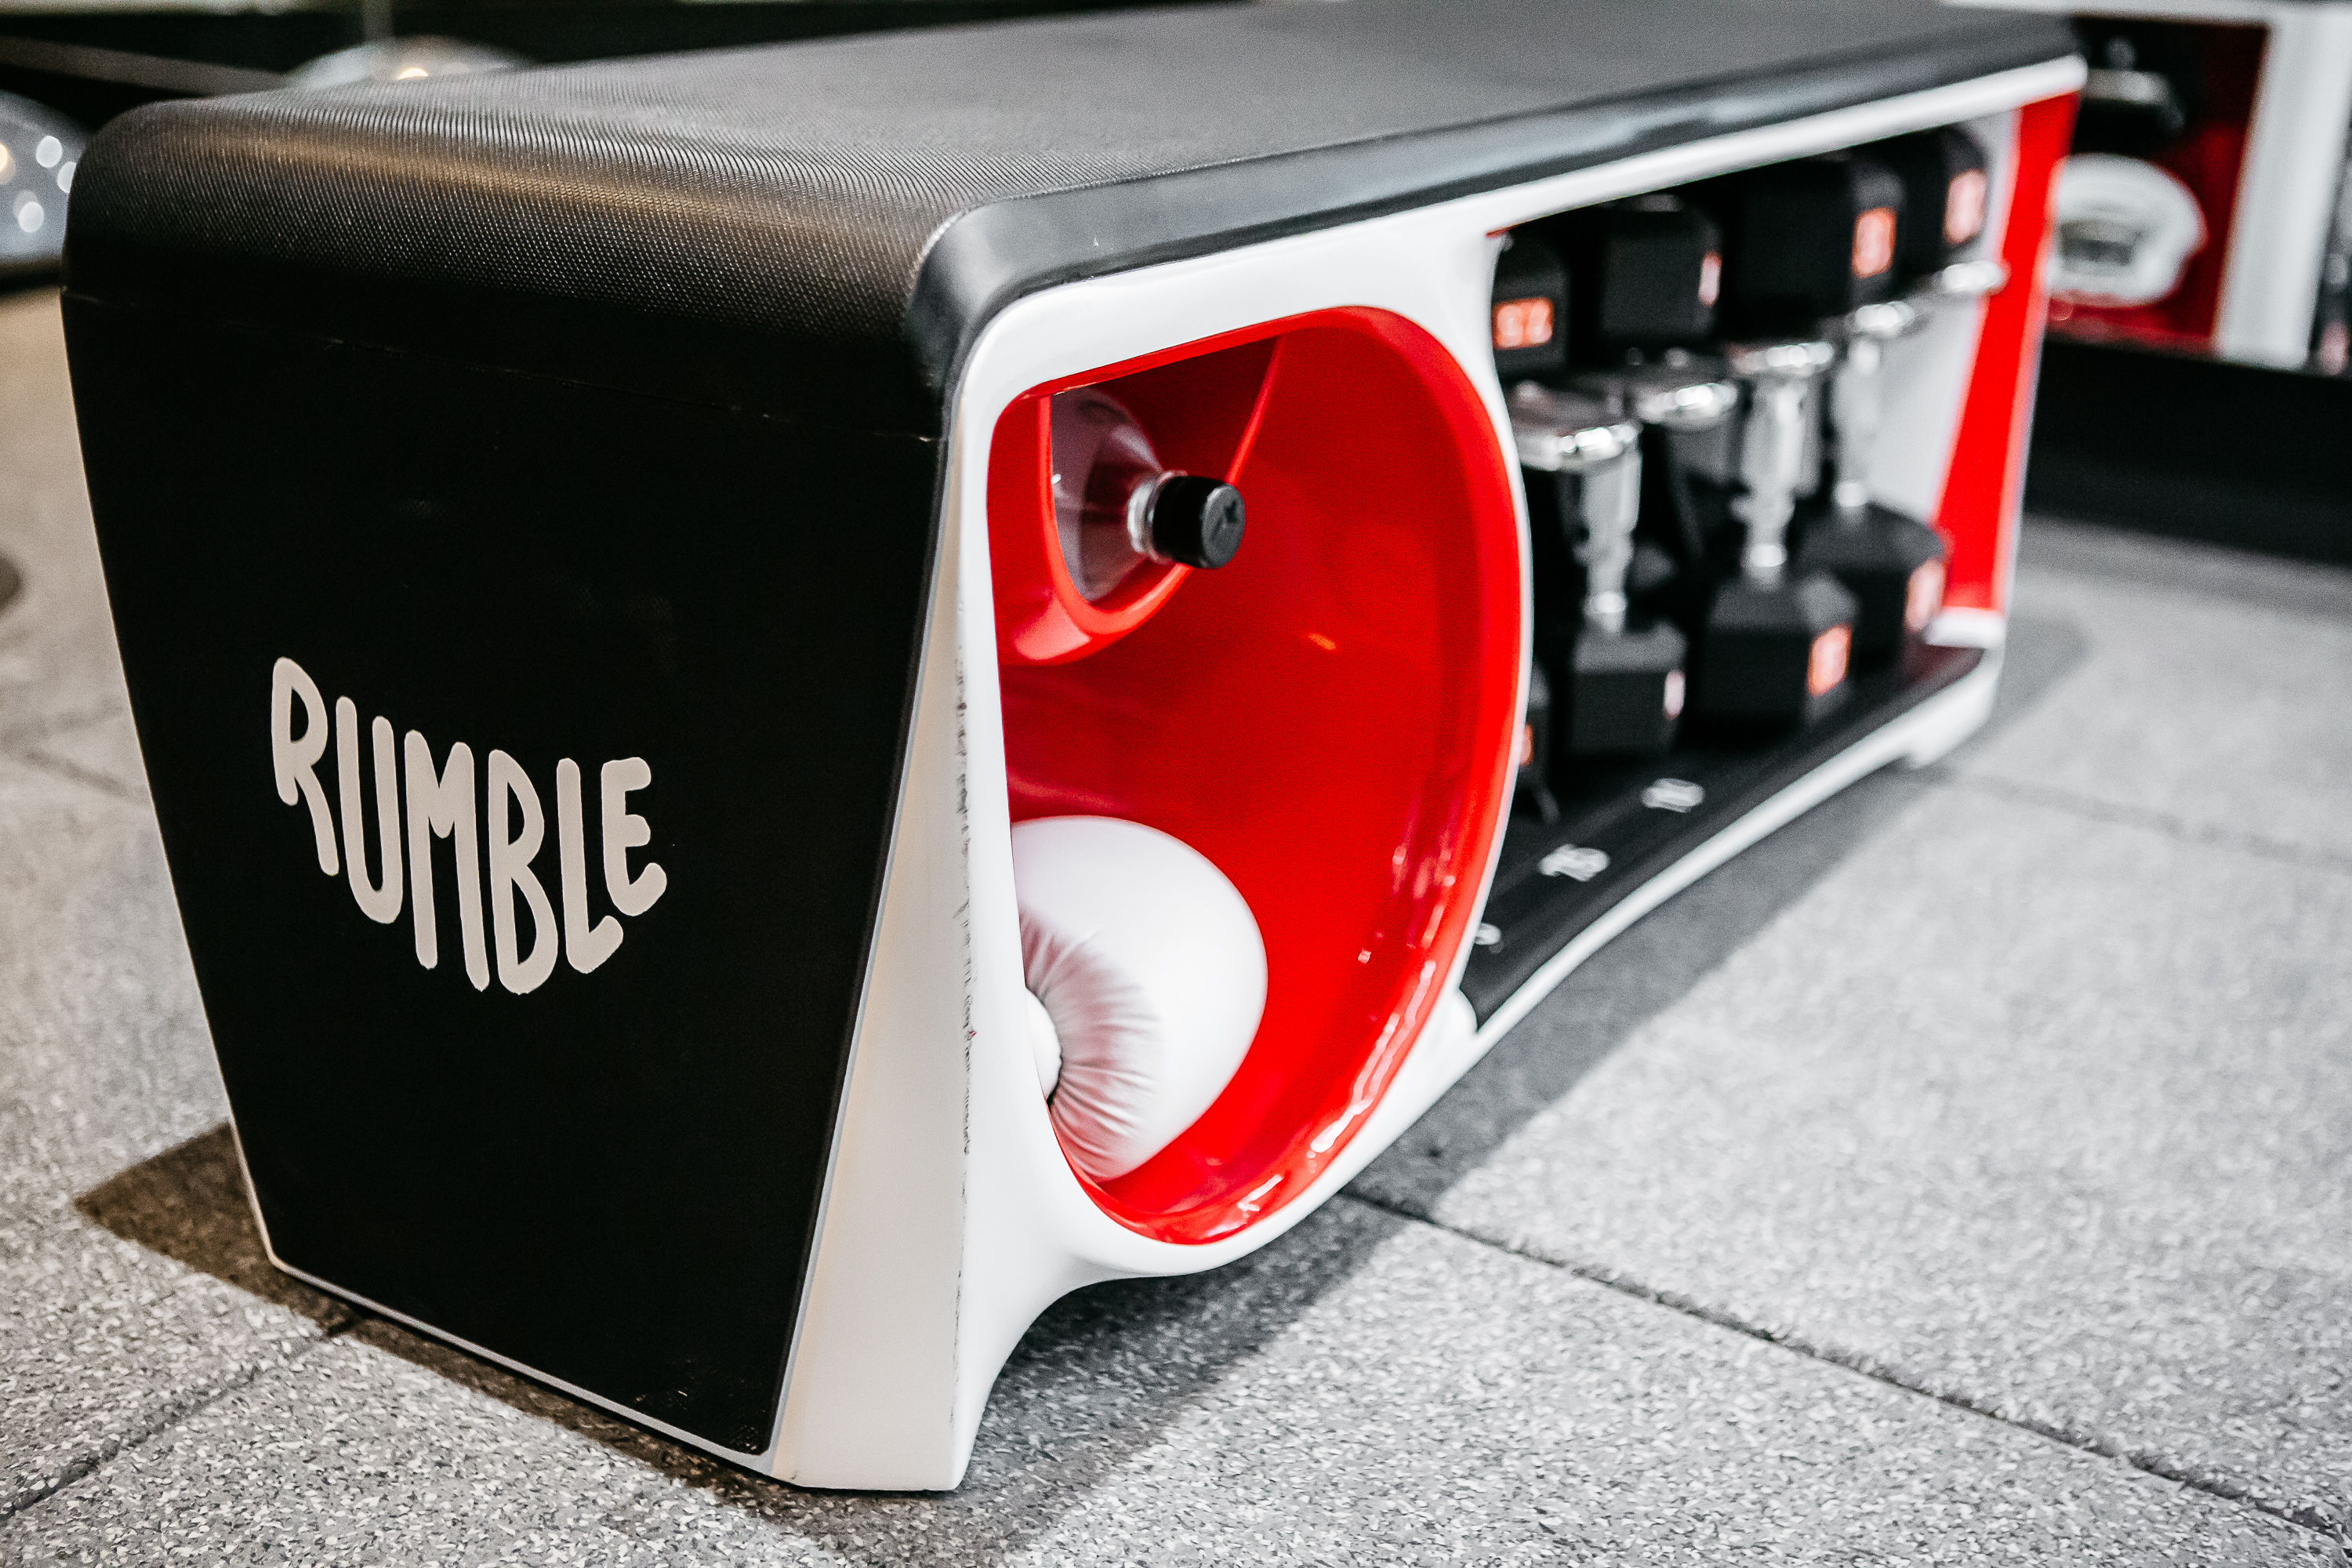 At the floor section, the benches have cubbies for easy glove and water bottle storage so you aren't tripping over people's stuff in the studio. (Image: Courtesy Rumble)